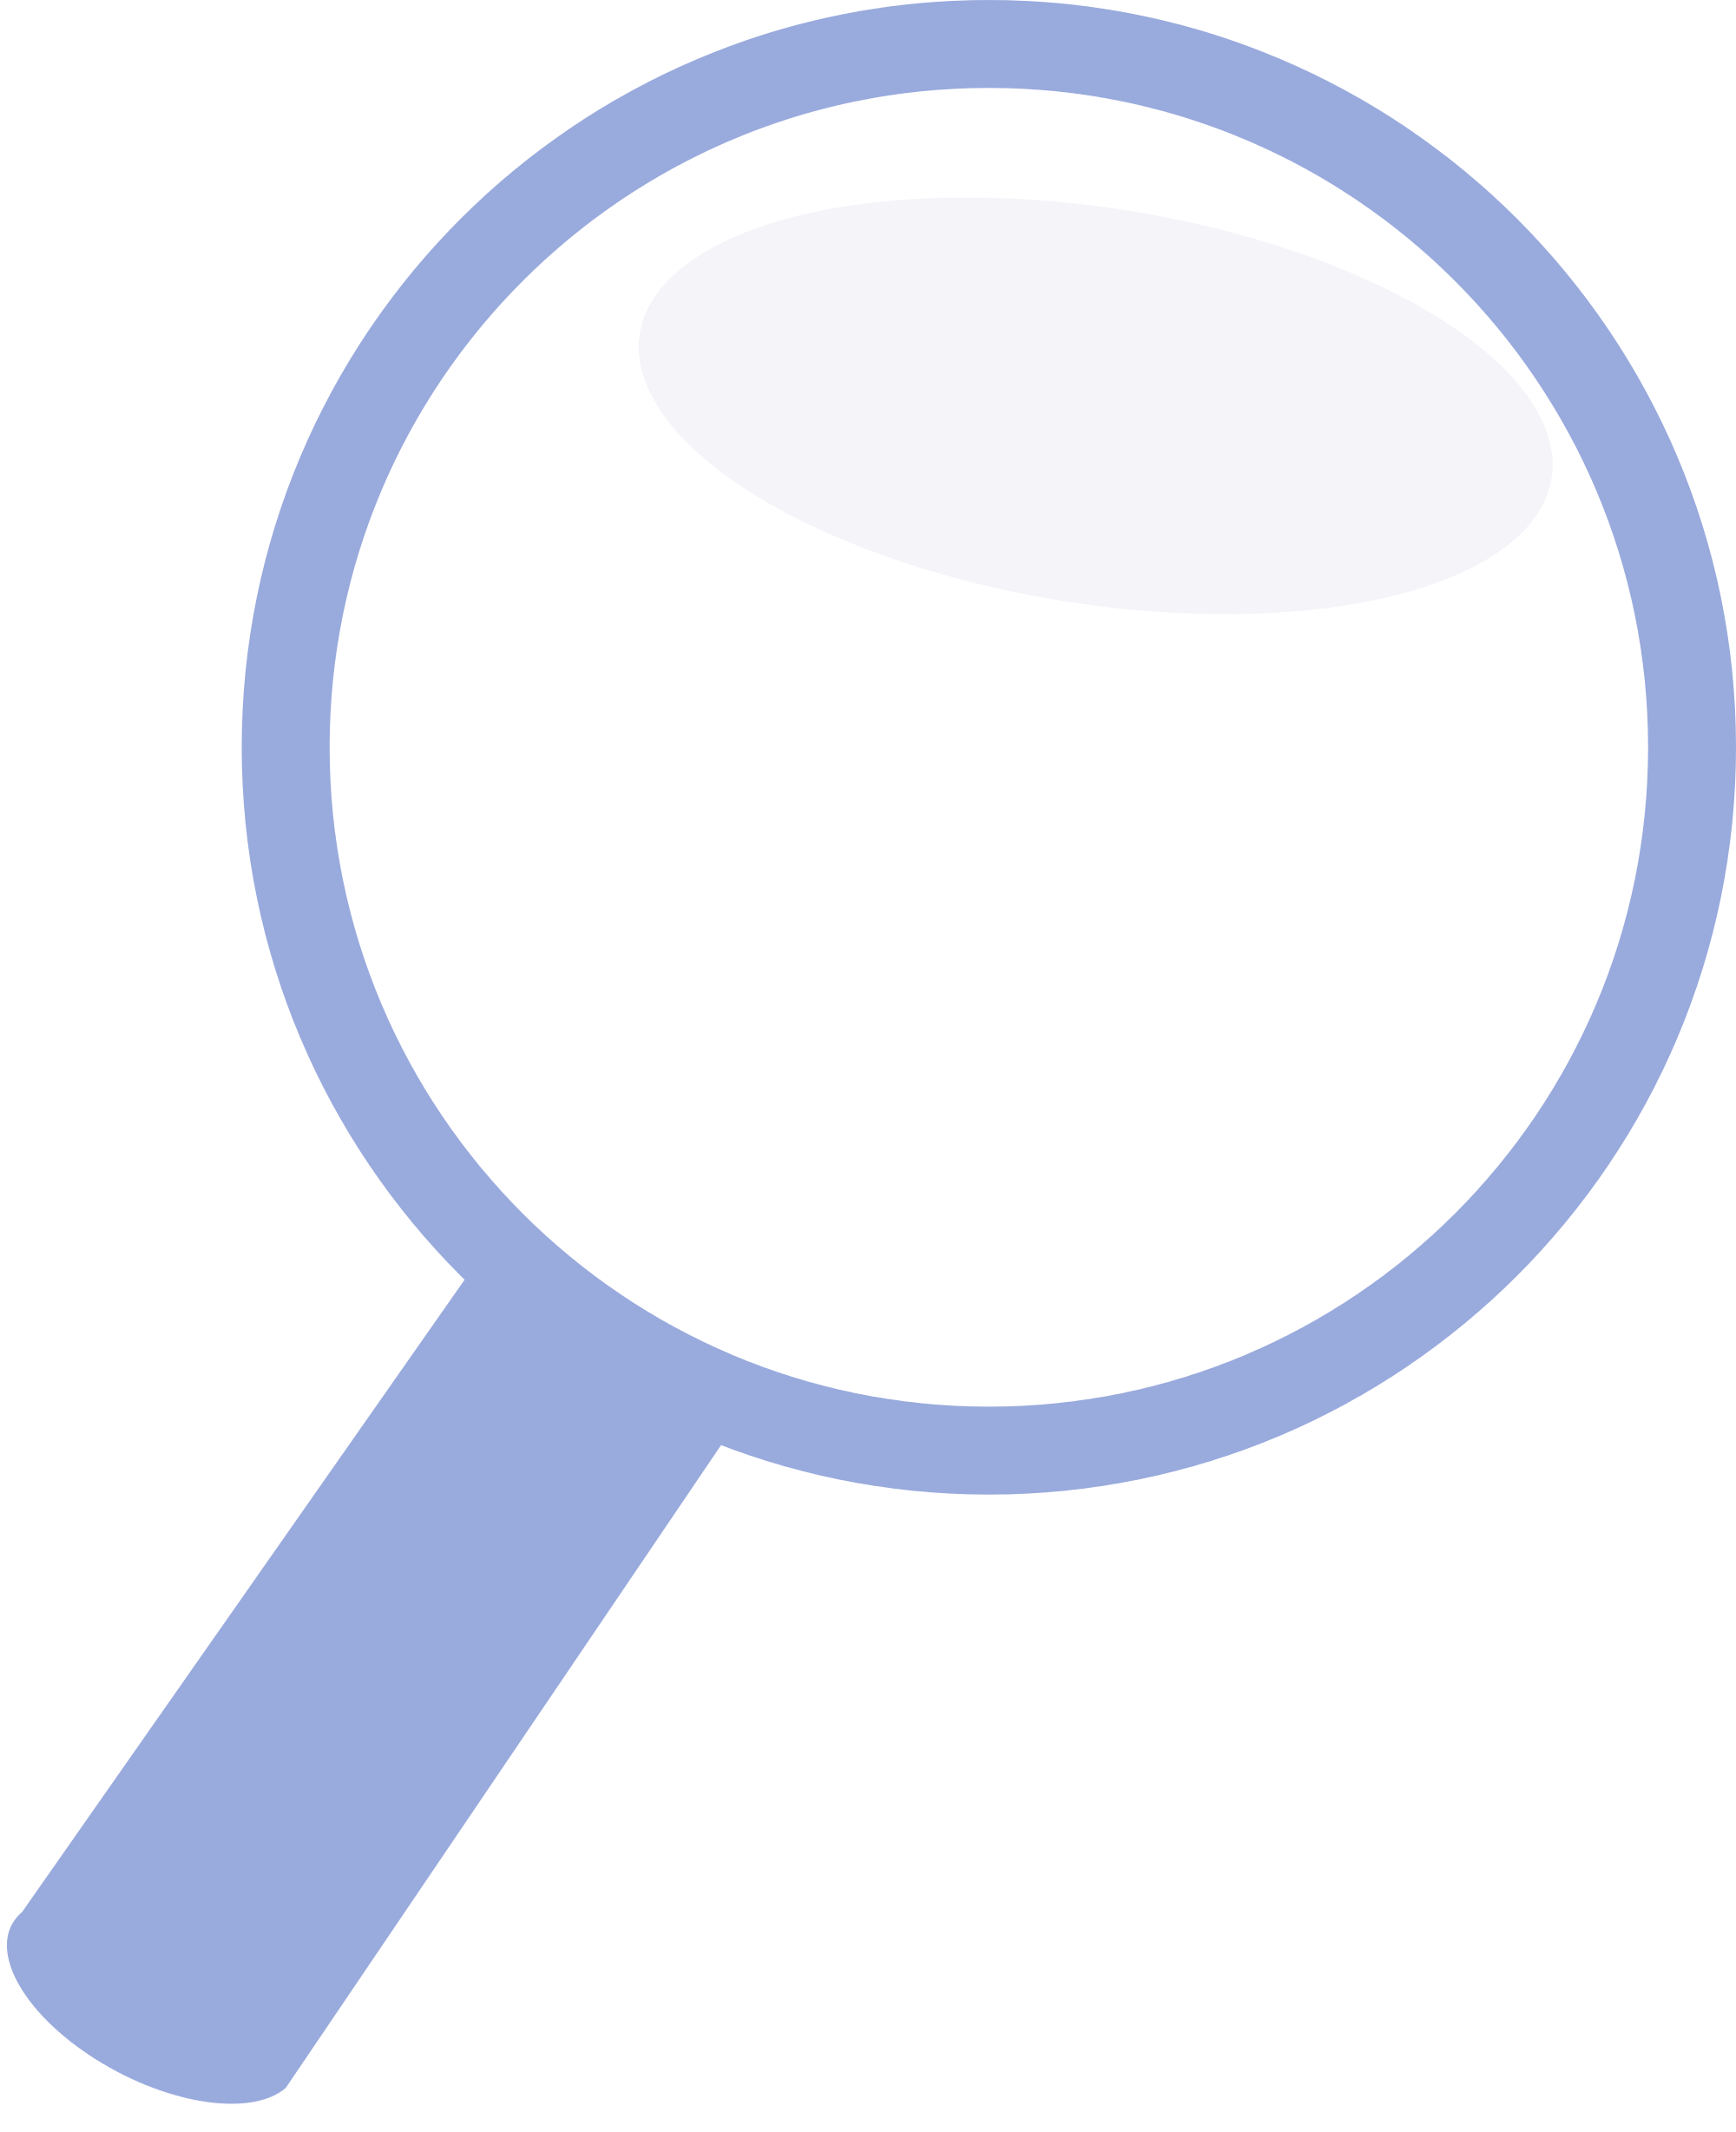 Tac vector magnifier. File blue magnifying glass